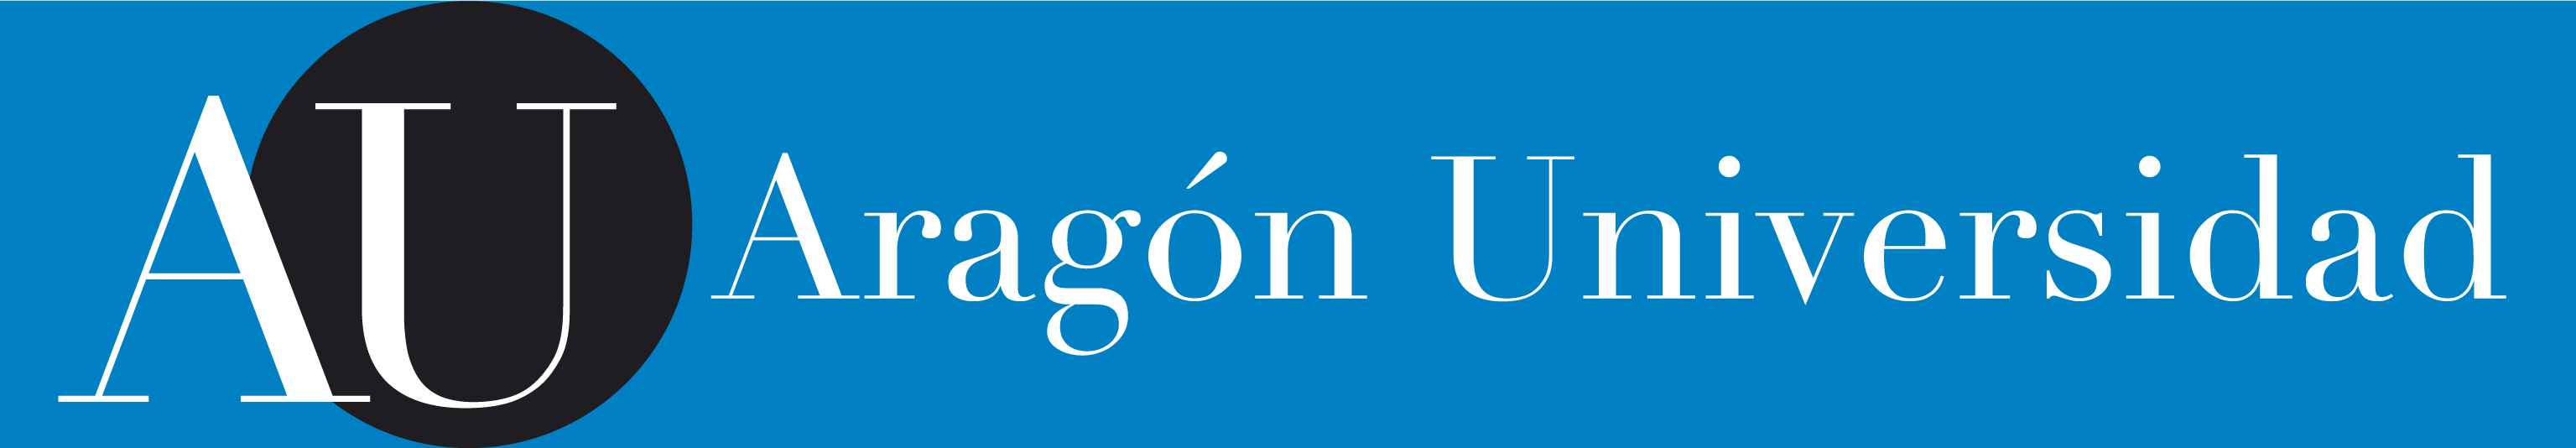 Aragon Universidad